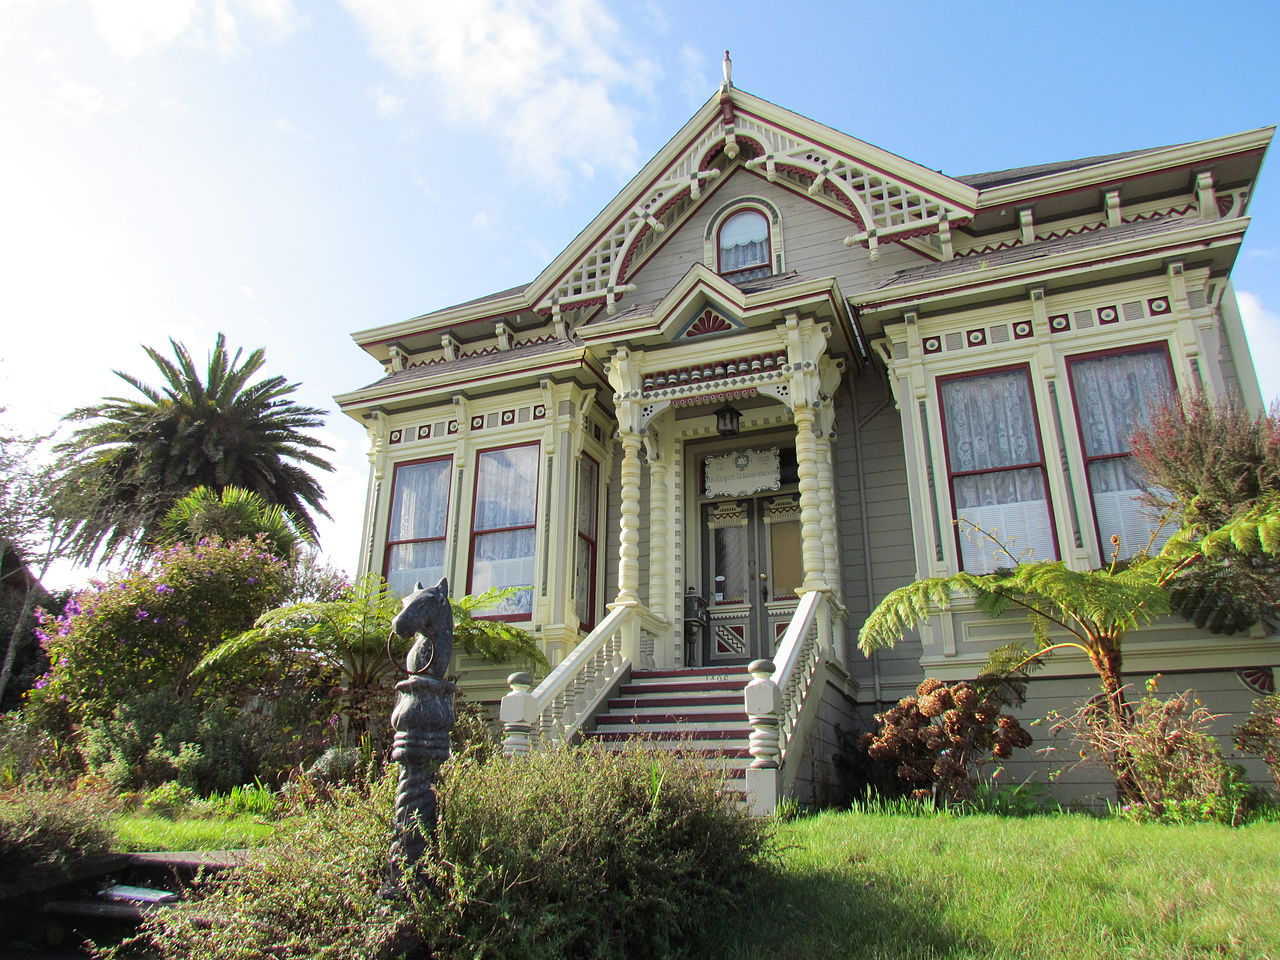 The former William S. Clark House is one of most striking buildings in Eureka. It is now a bed and breakfast inn.